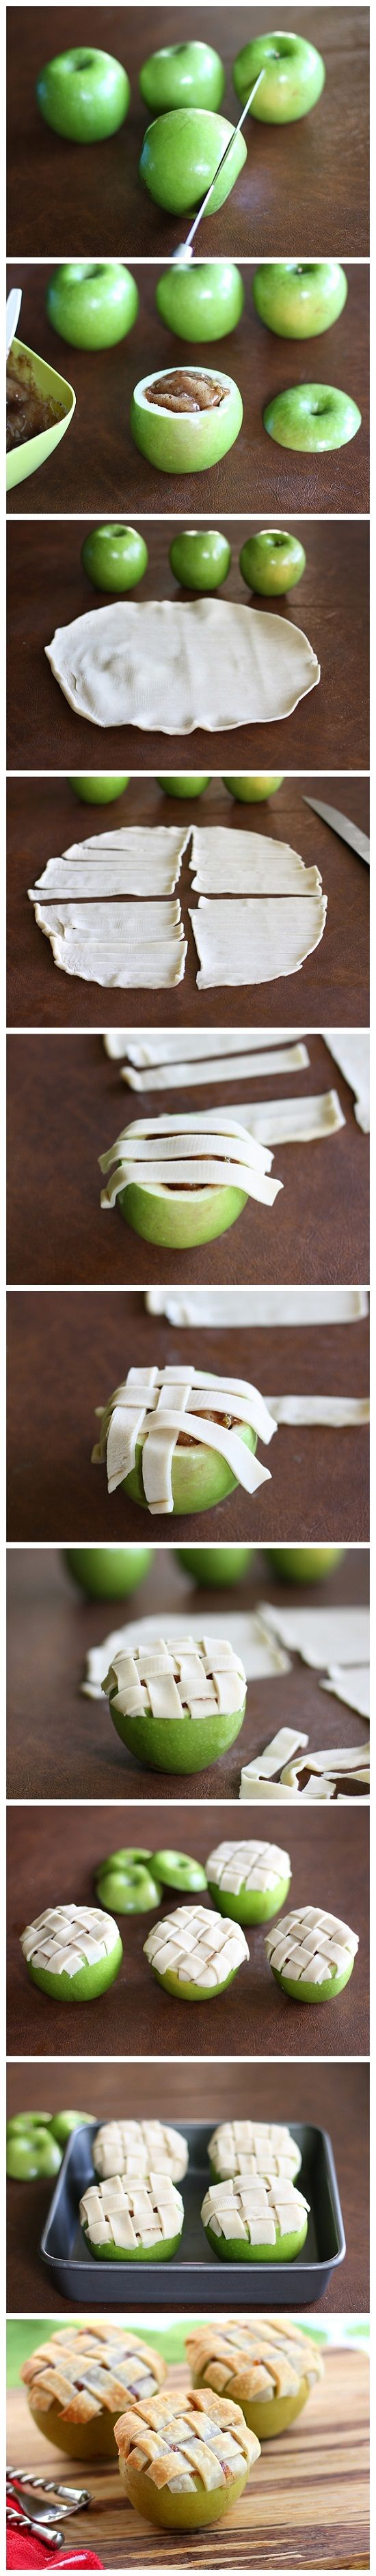 Mini apple pies with lattice crusts, baked inside apples. Ever see anything cuter than this?: